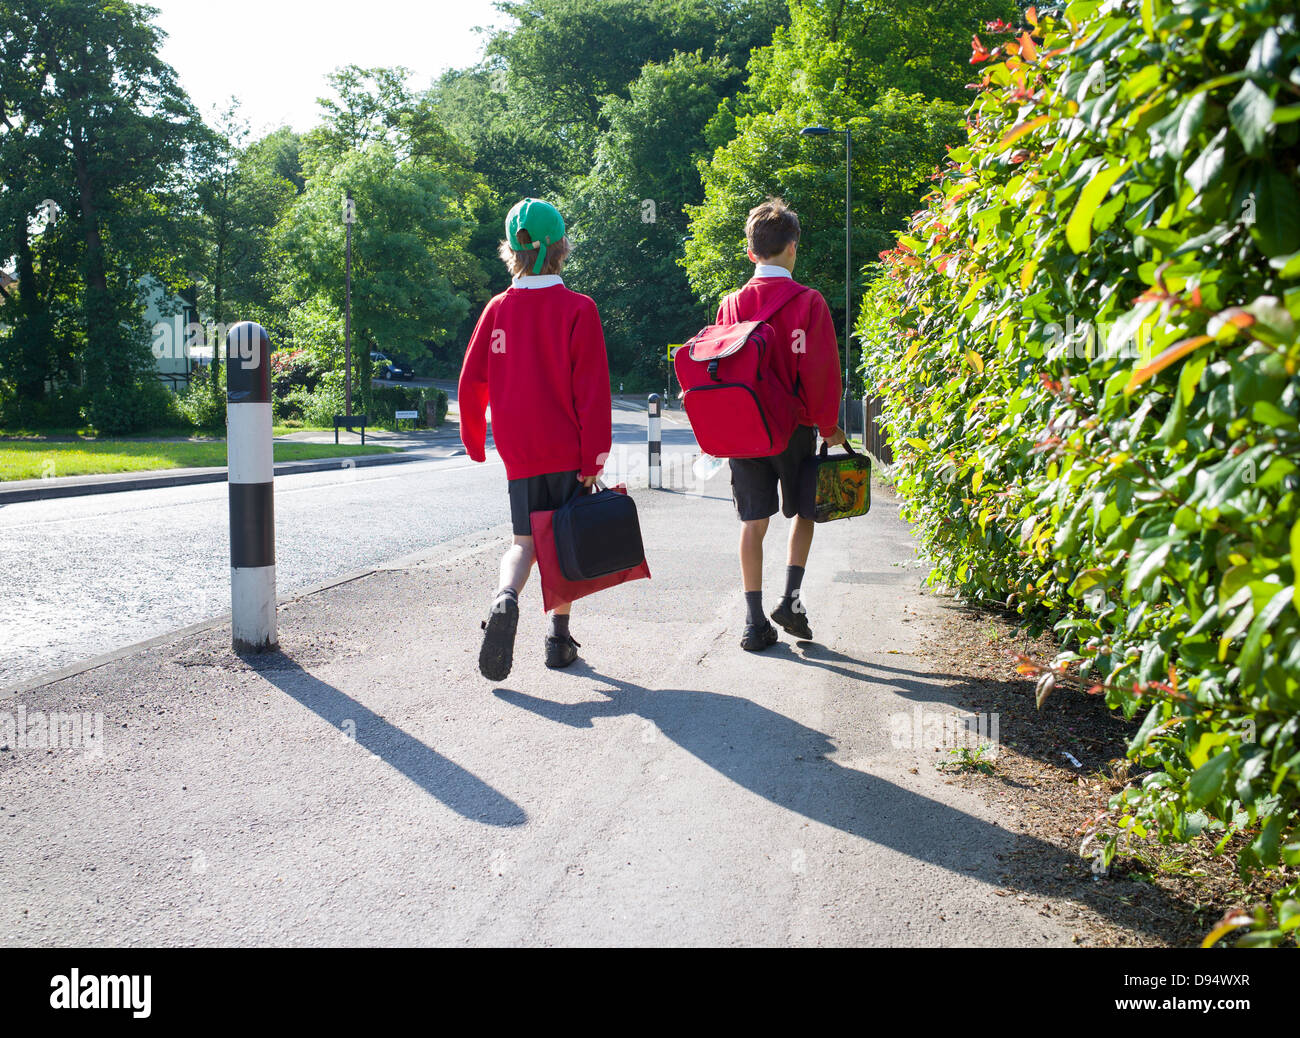 two young boys walk to school - Stock Image